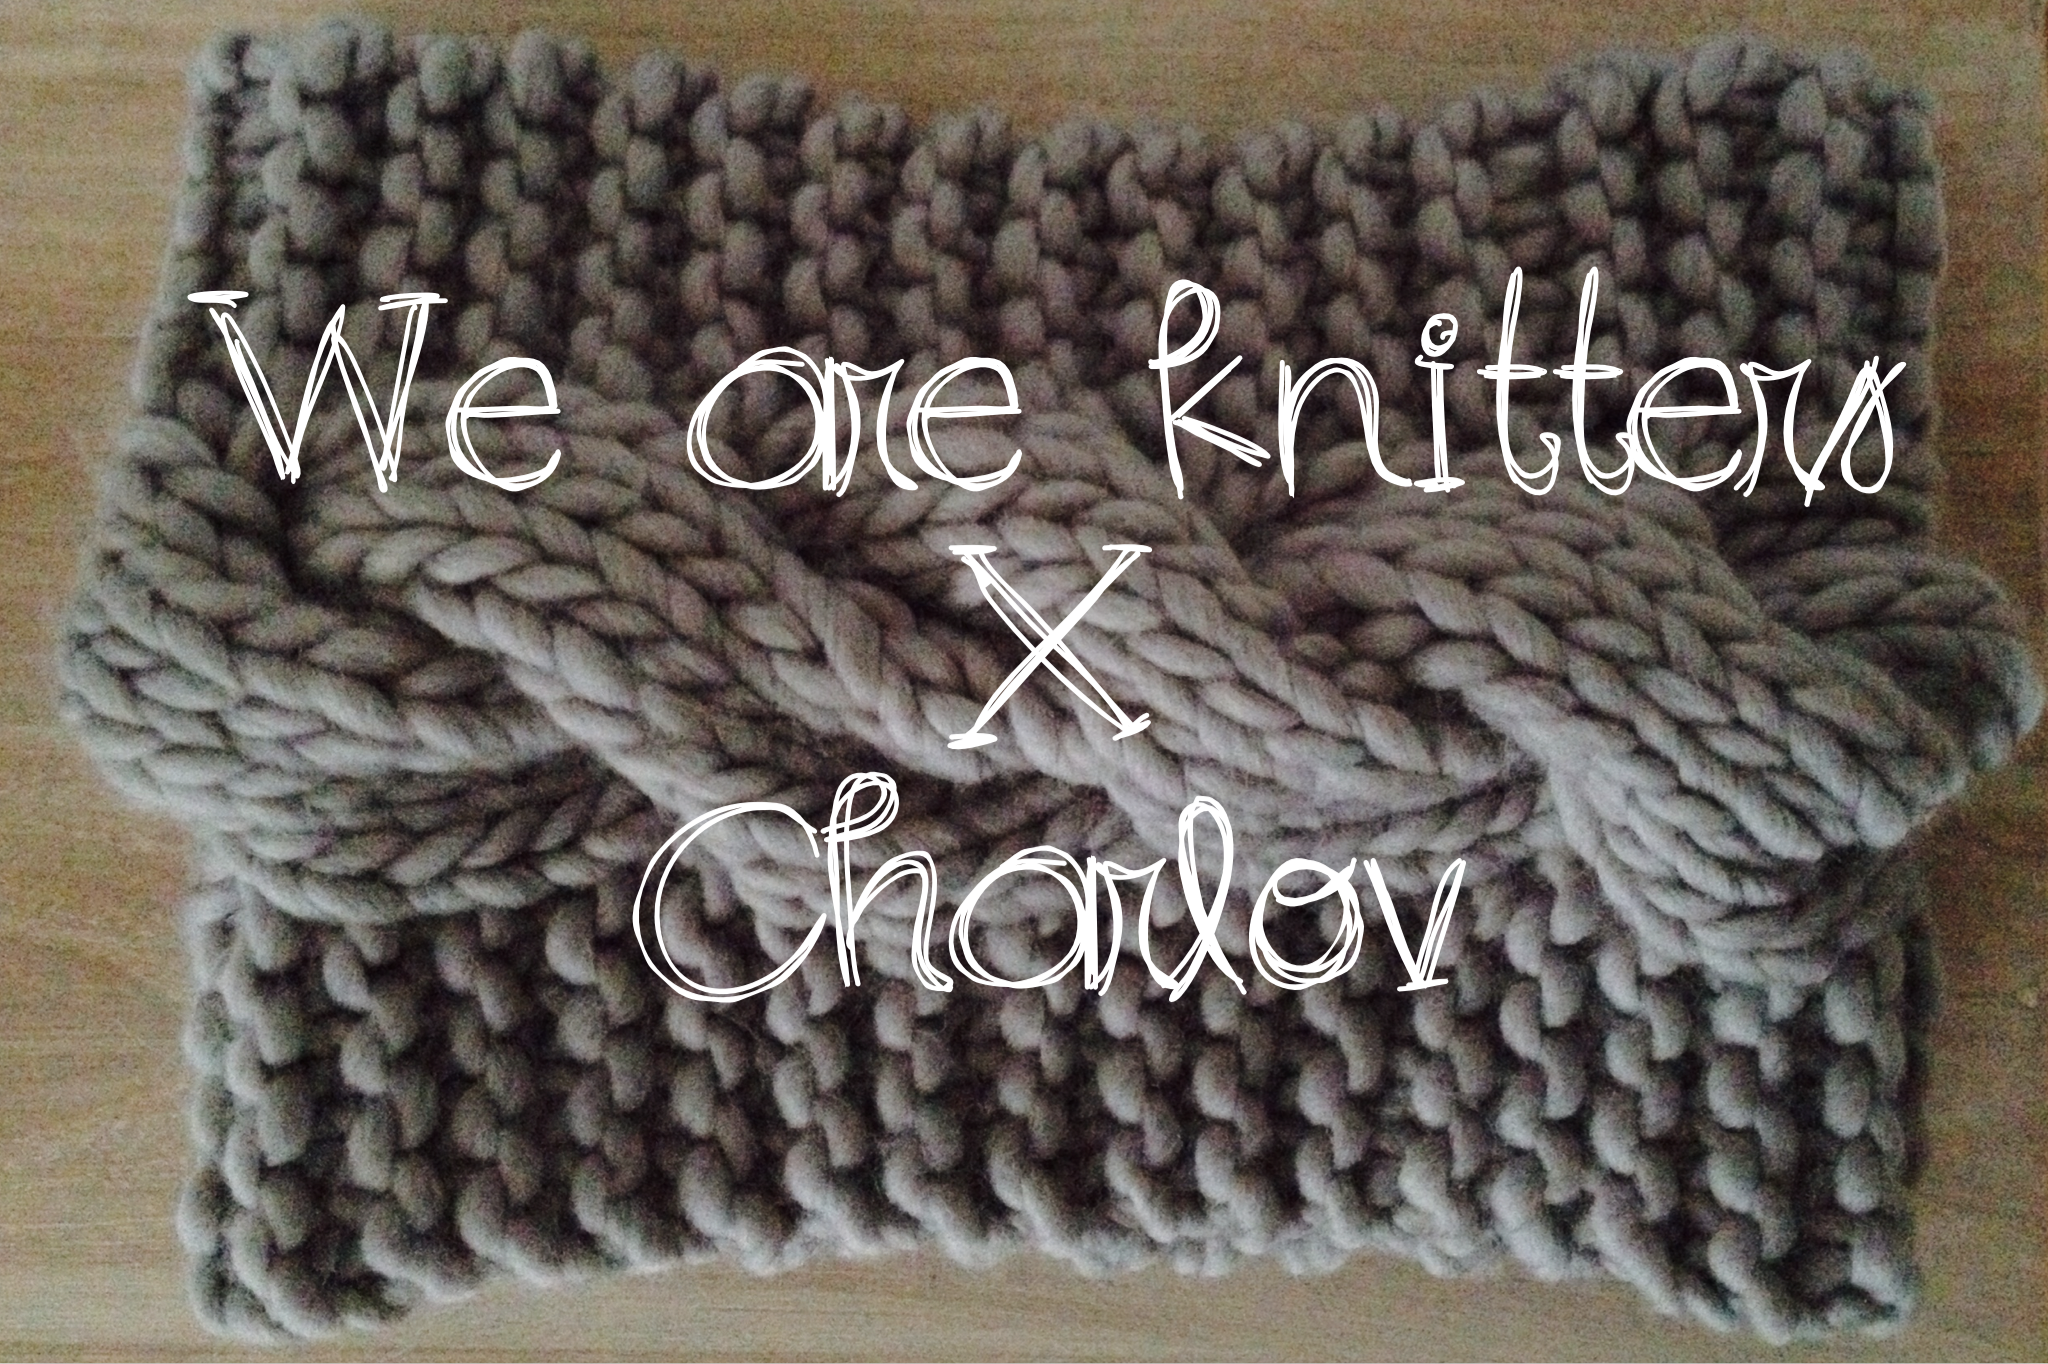 We Are Knitters x Charlov